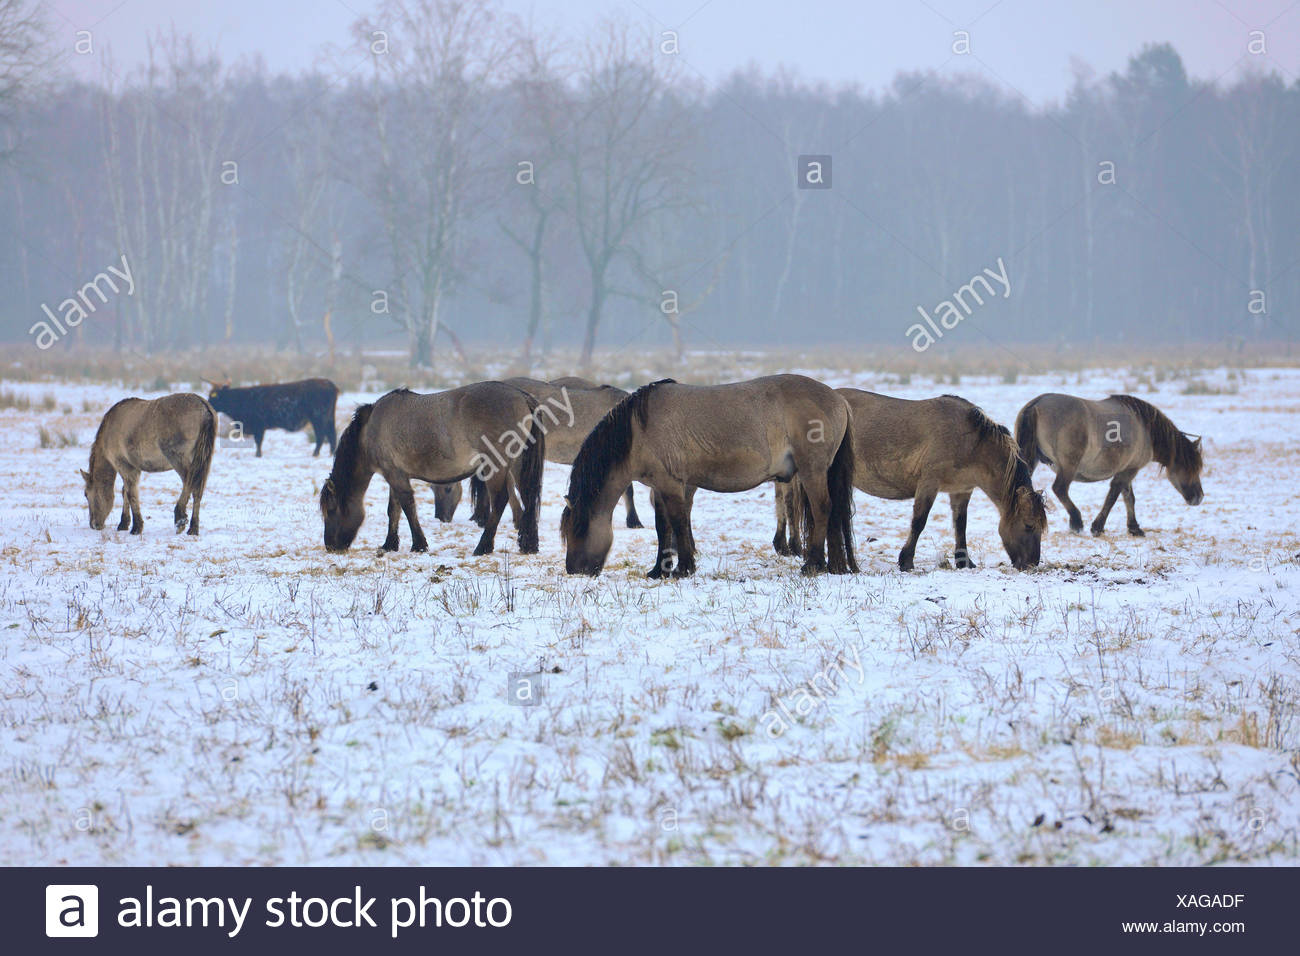 Konik horse (Equus przewalskii f. caballus), konik horses standing in a snowy meadow and grazing , Germany Stock Photo